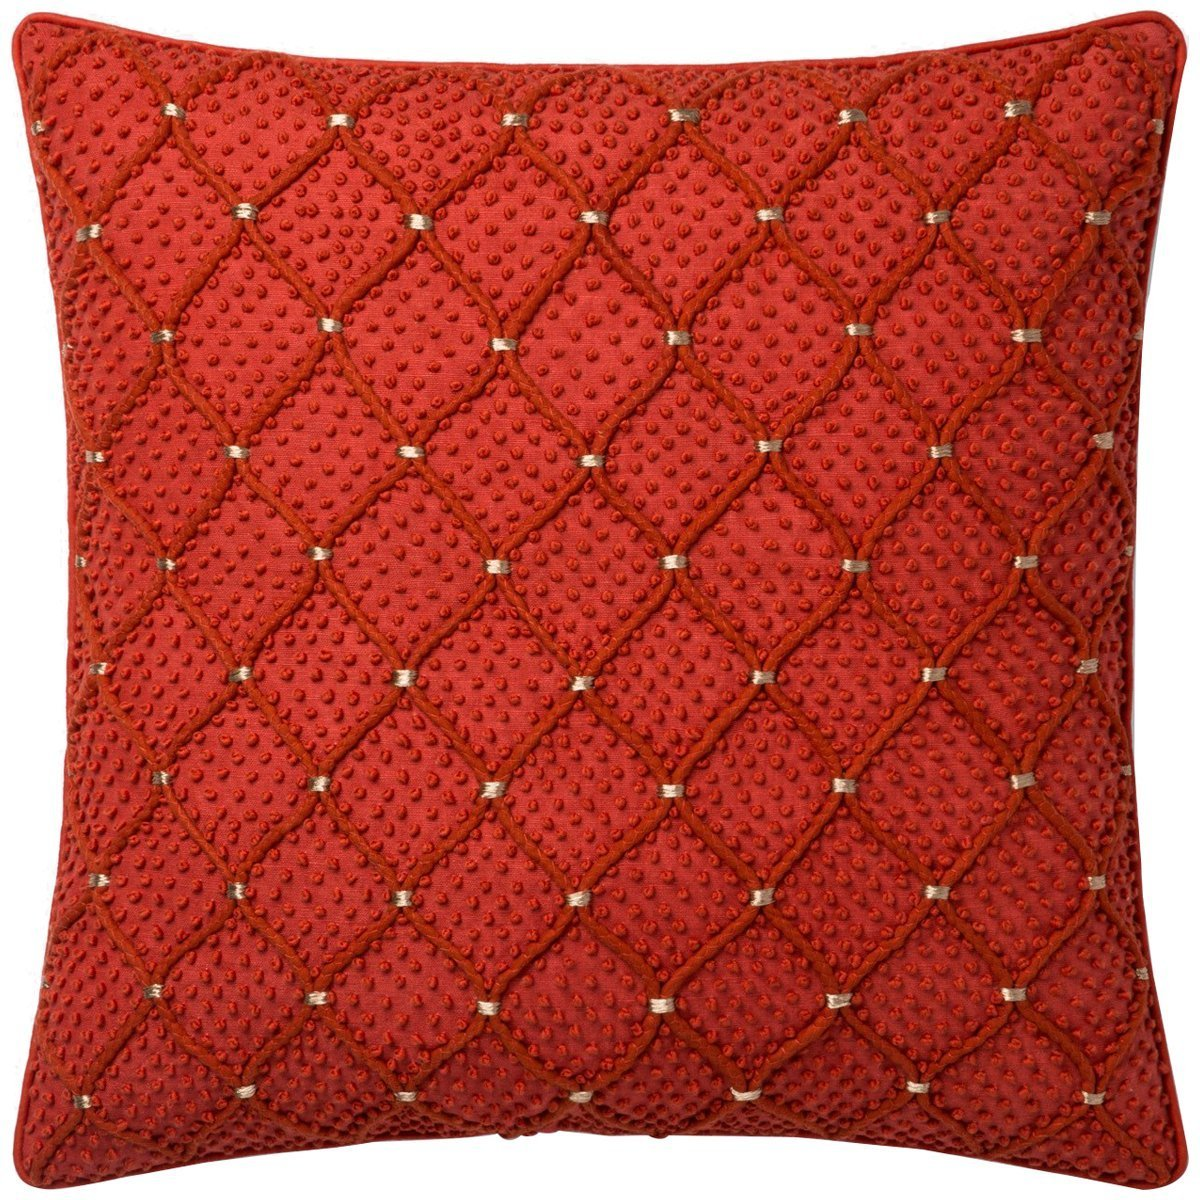 Loloi P0675 Pillow Set of 2